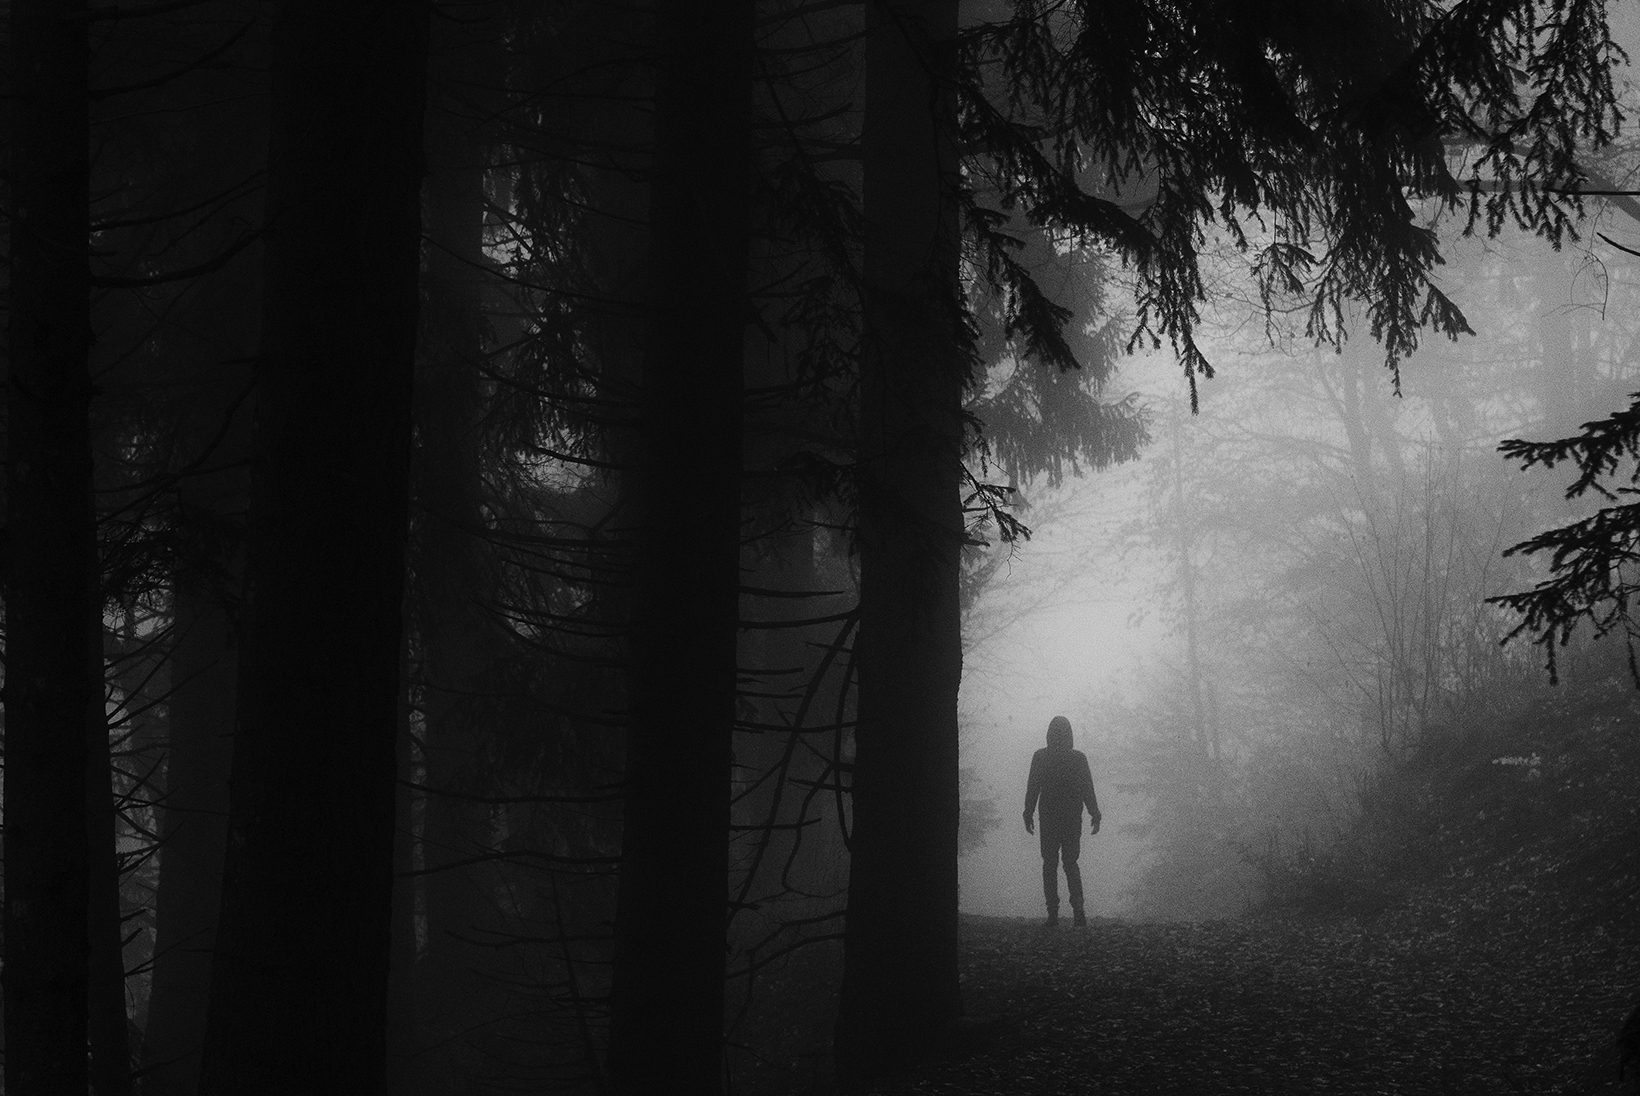 A silhouette of a person looks small against the large silhouettes and darkness of the forest surrounding them.